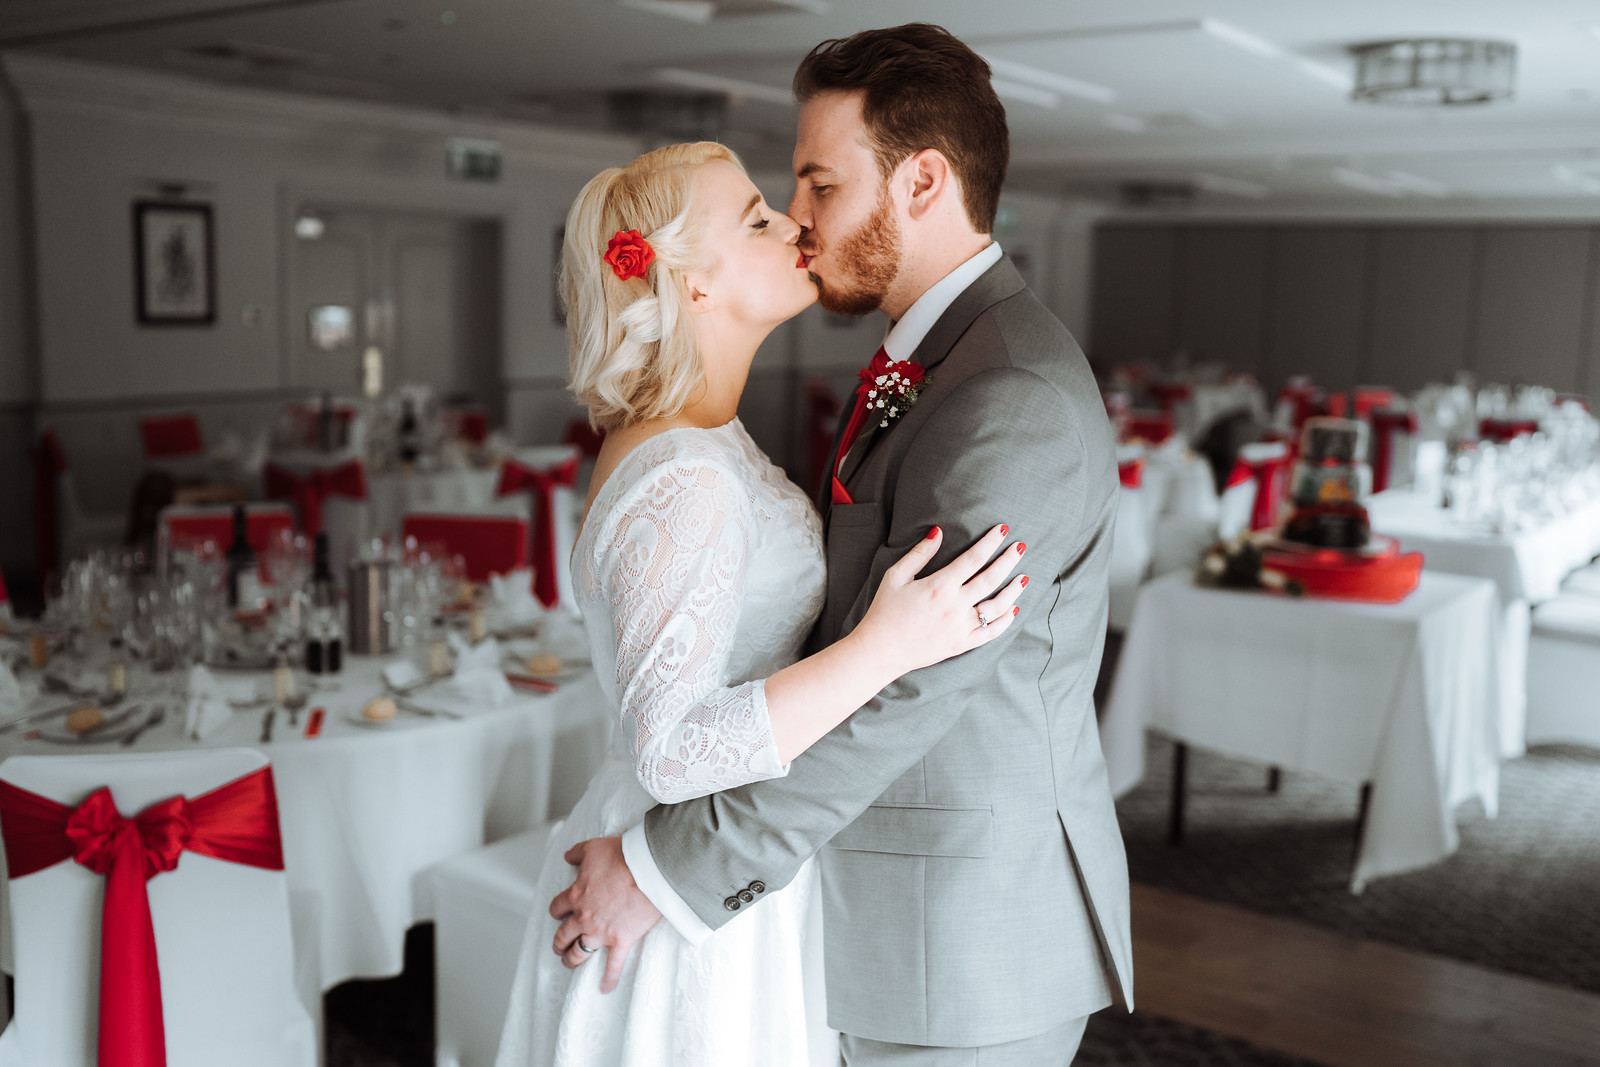 Bride and groom kiss with their reception in the background